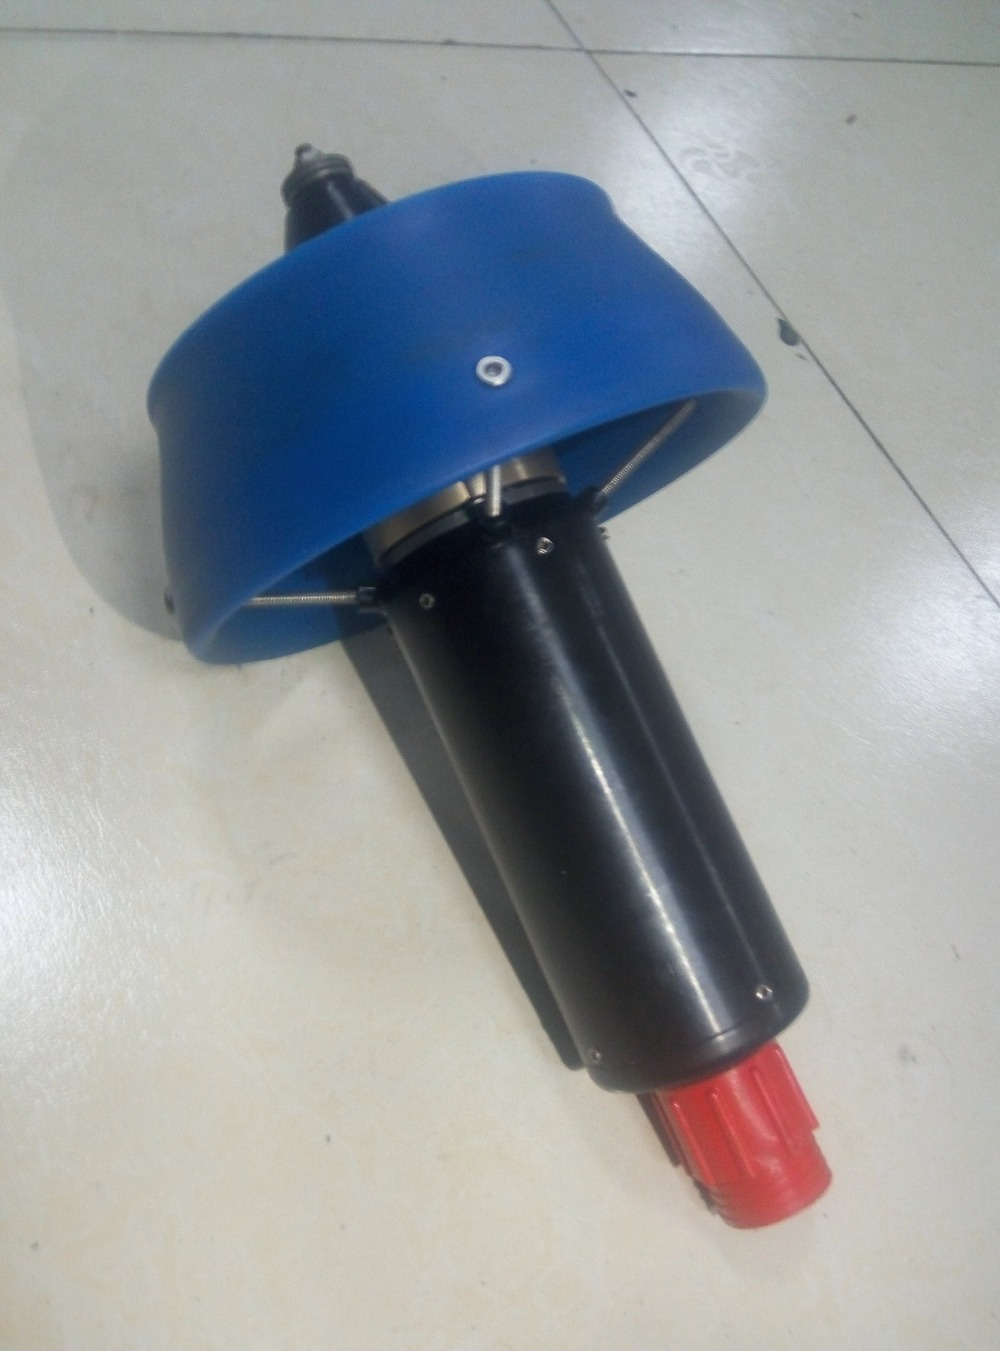 Underwater craft propeller Brushless Motor ROV, AUV, underwater vehicle magnetic coupling waterproof technology - shenzhen kdws.888 liao yong store